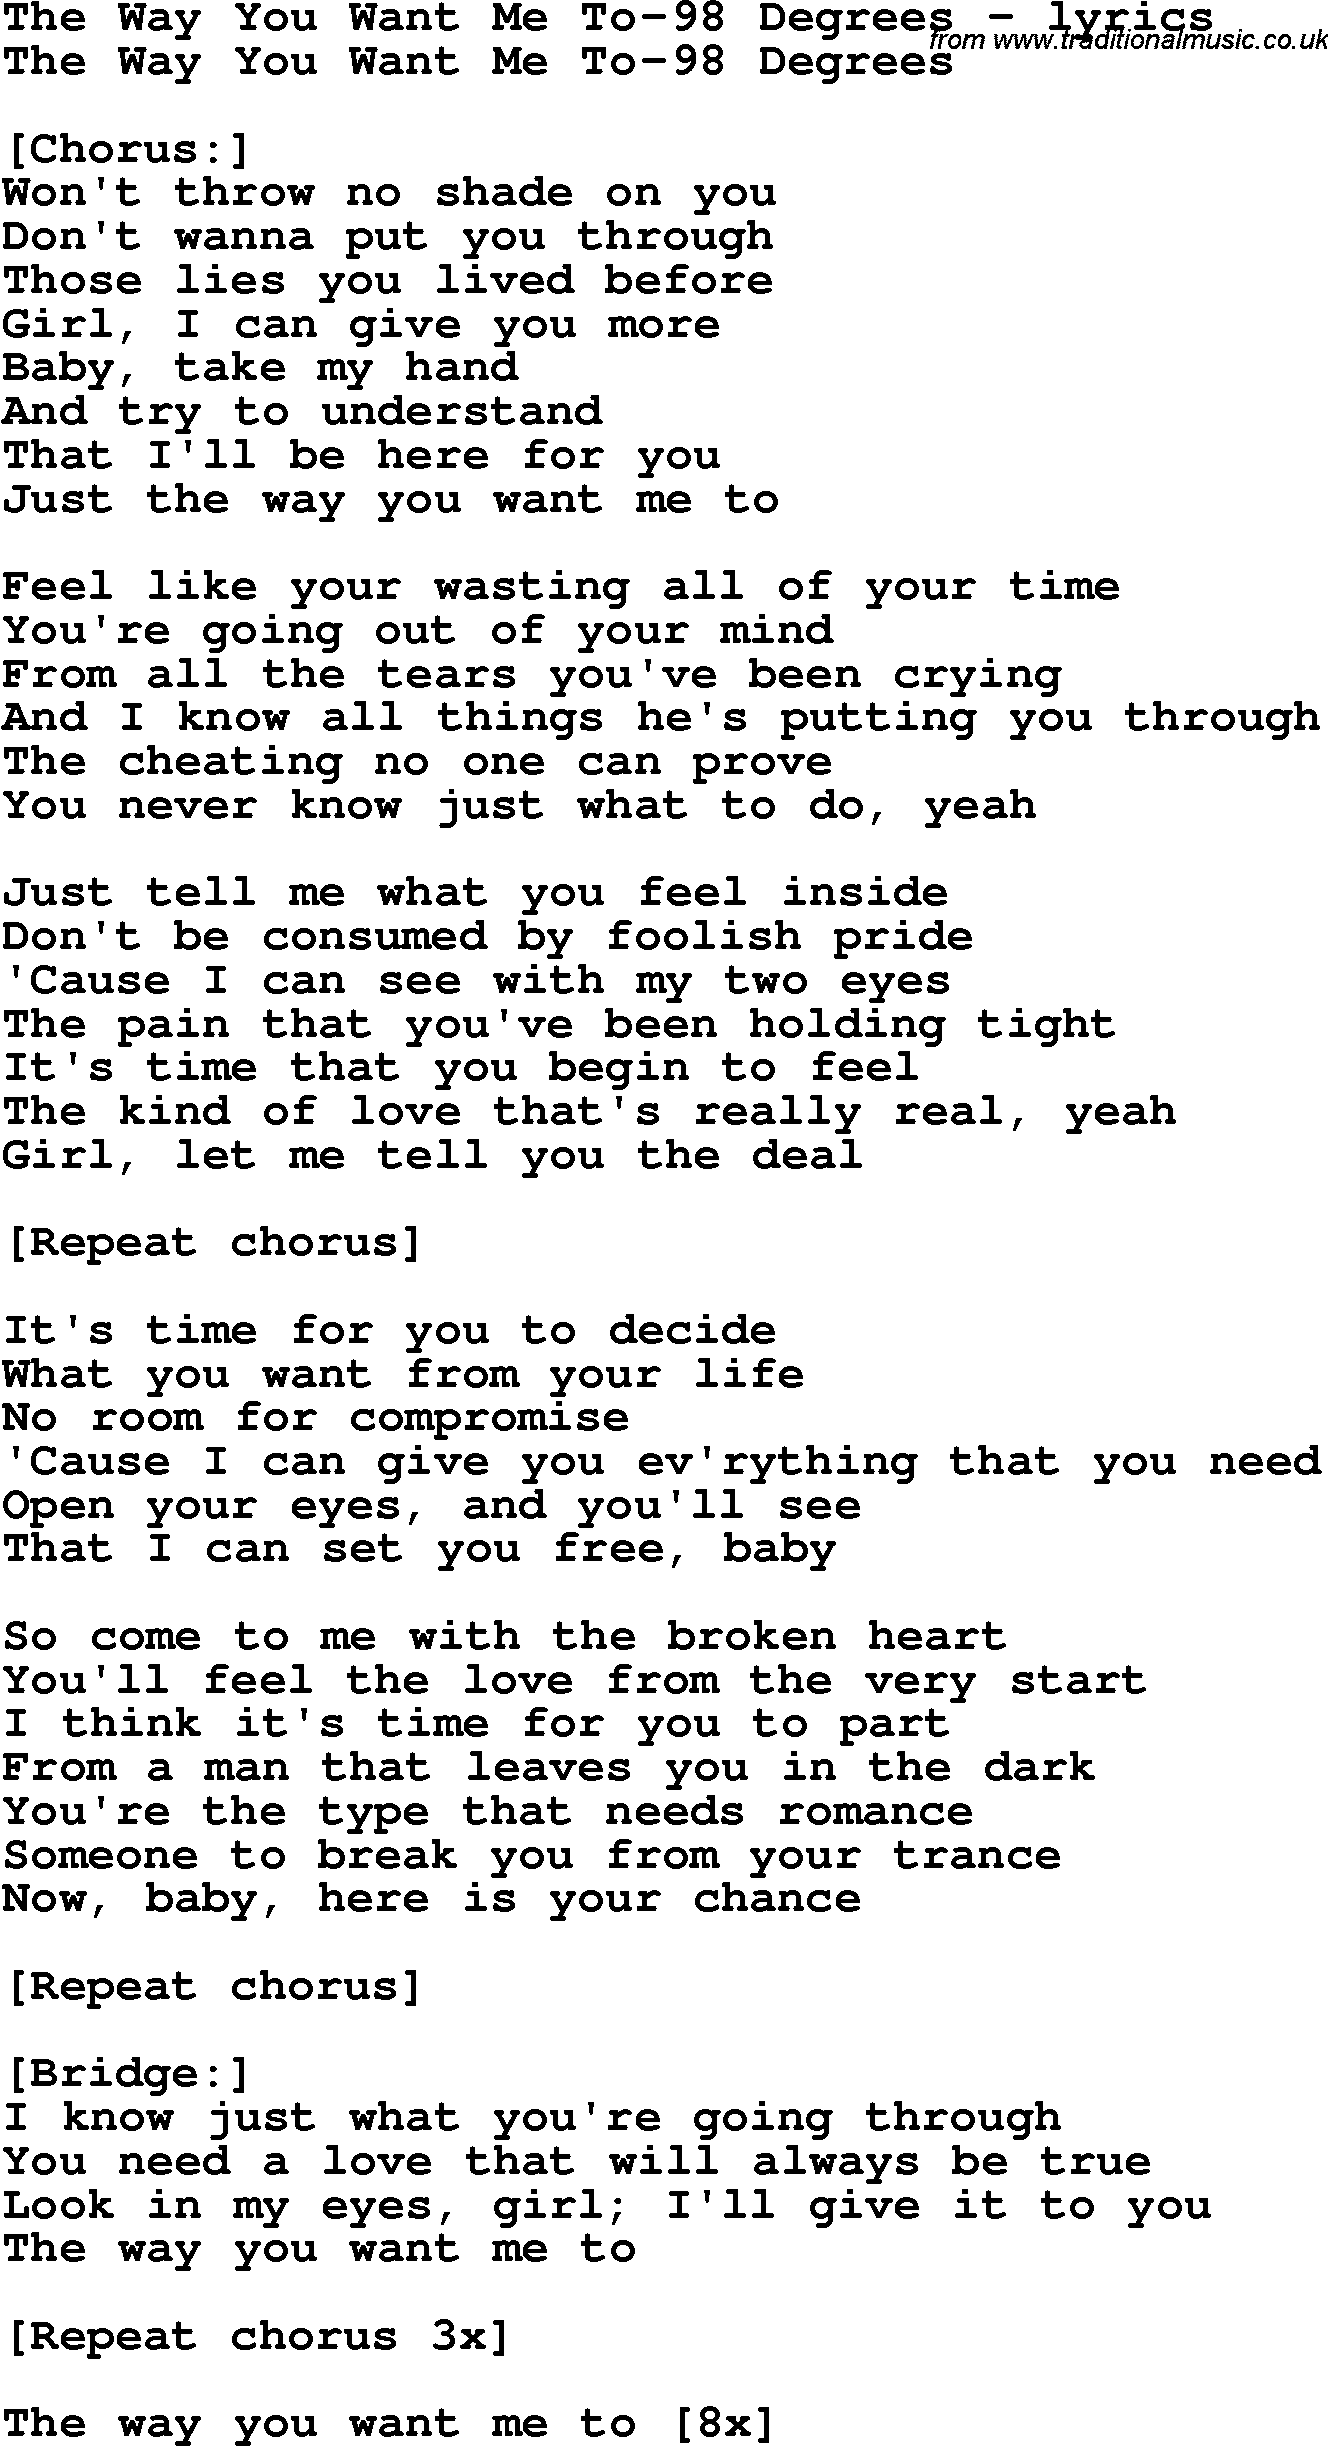 I want you show me the way lyrics